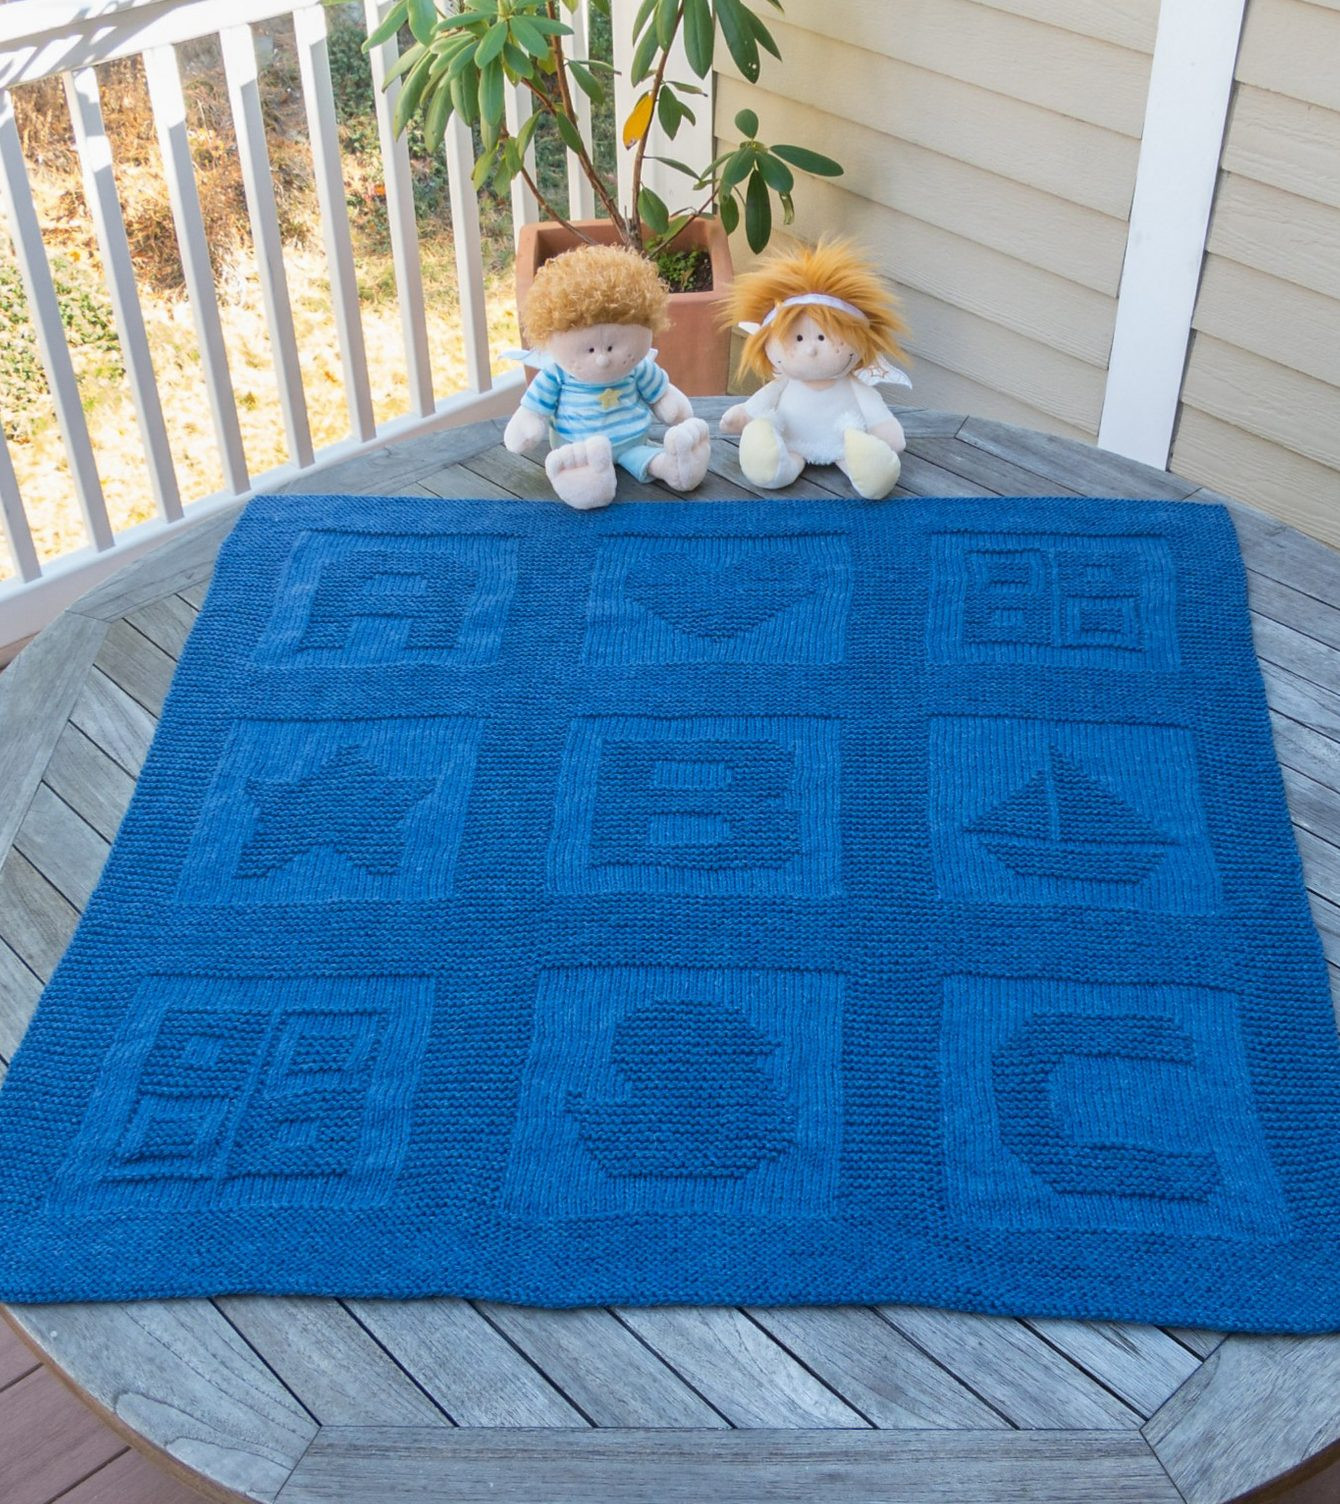 Knitted Baby Blanket Best Of Easy Baby Blanket Knitting Patterns Of Amazing 46 Pictures Knitted Baby Blanket